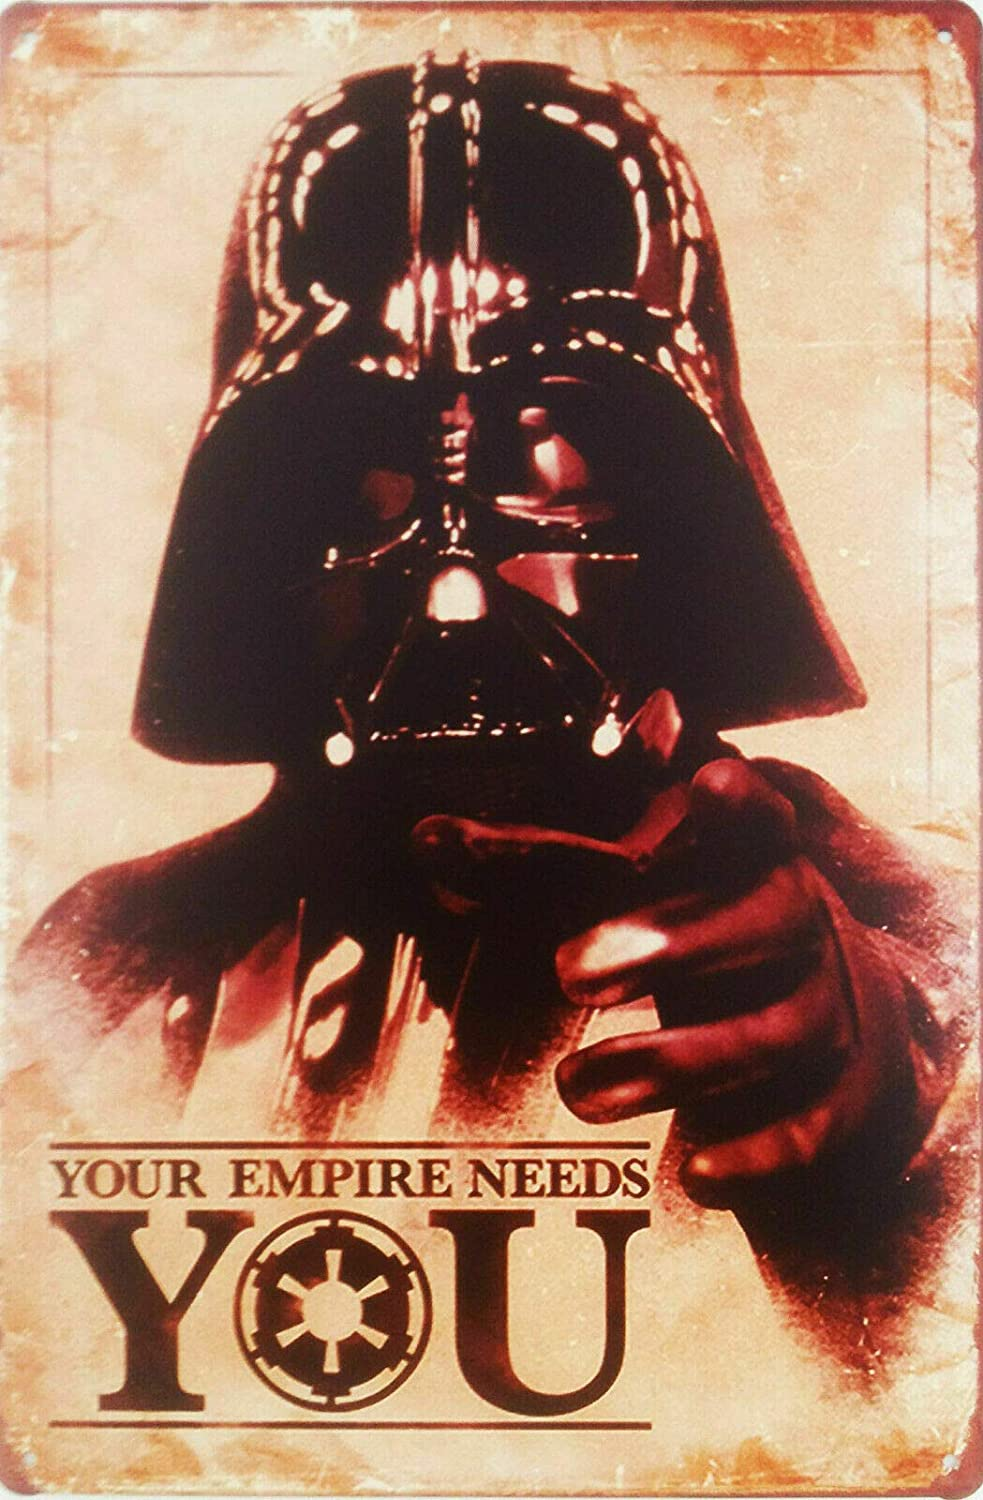 FIKR Your Empire Needs You! Metal Plaque | Star Wars Darth Vader Fun Movie Tin Sign,Vintage Metal Pub Club Cafe bar Home Wall Art Decoration Poster Retro 8x12 inches